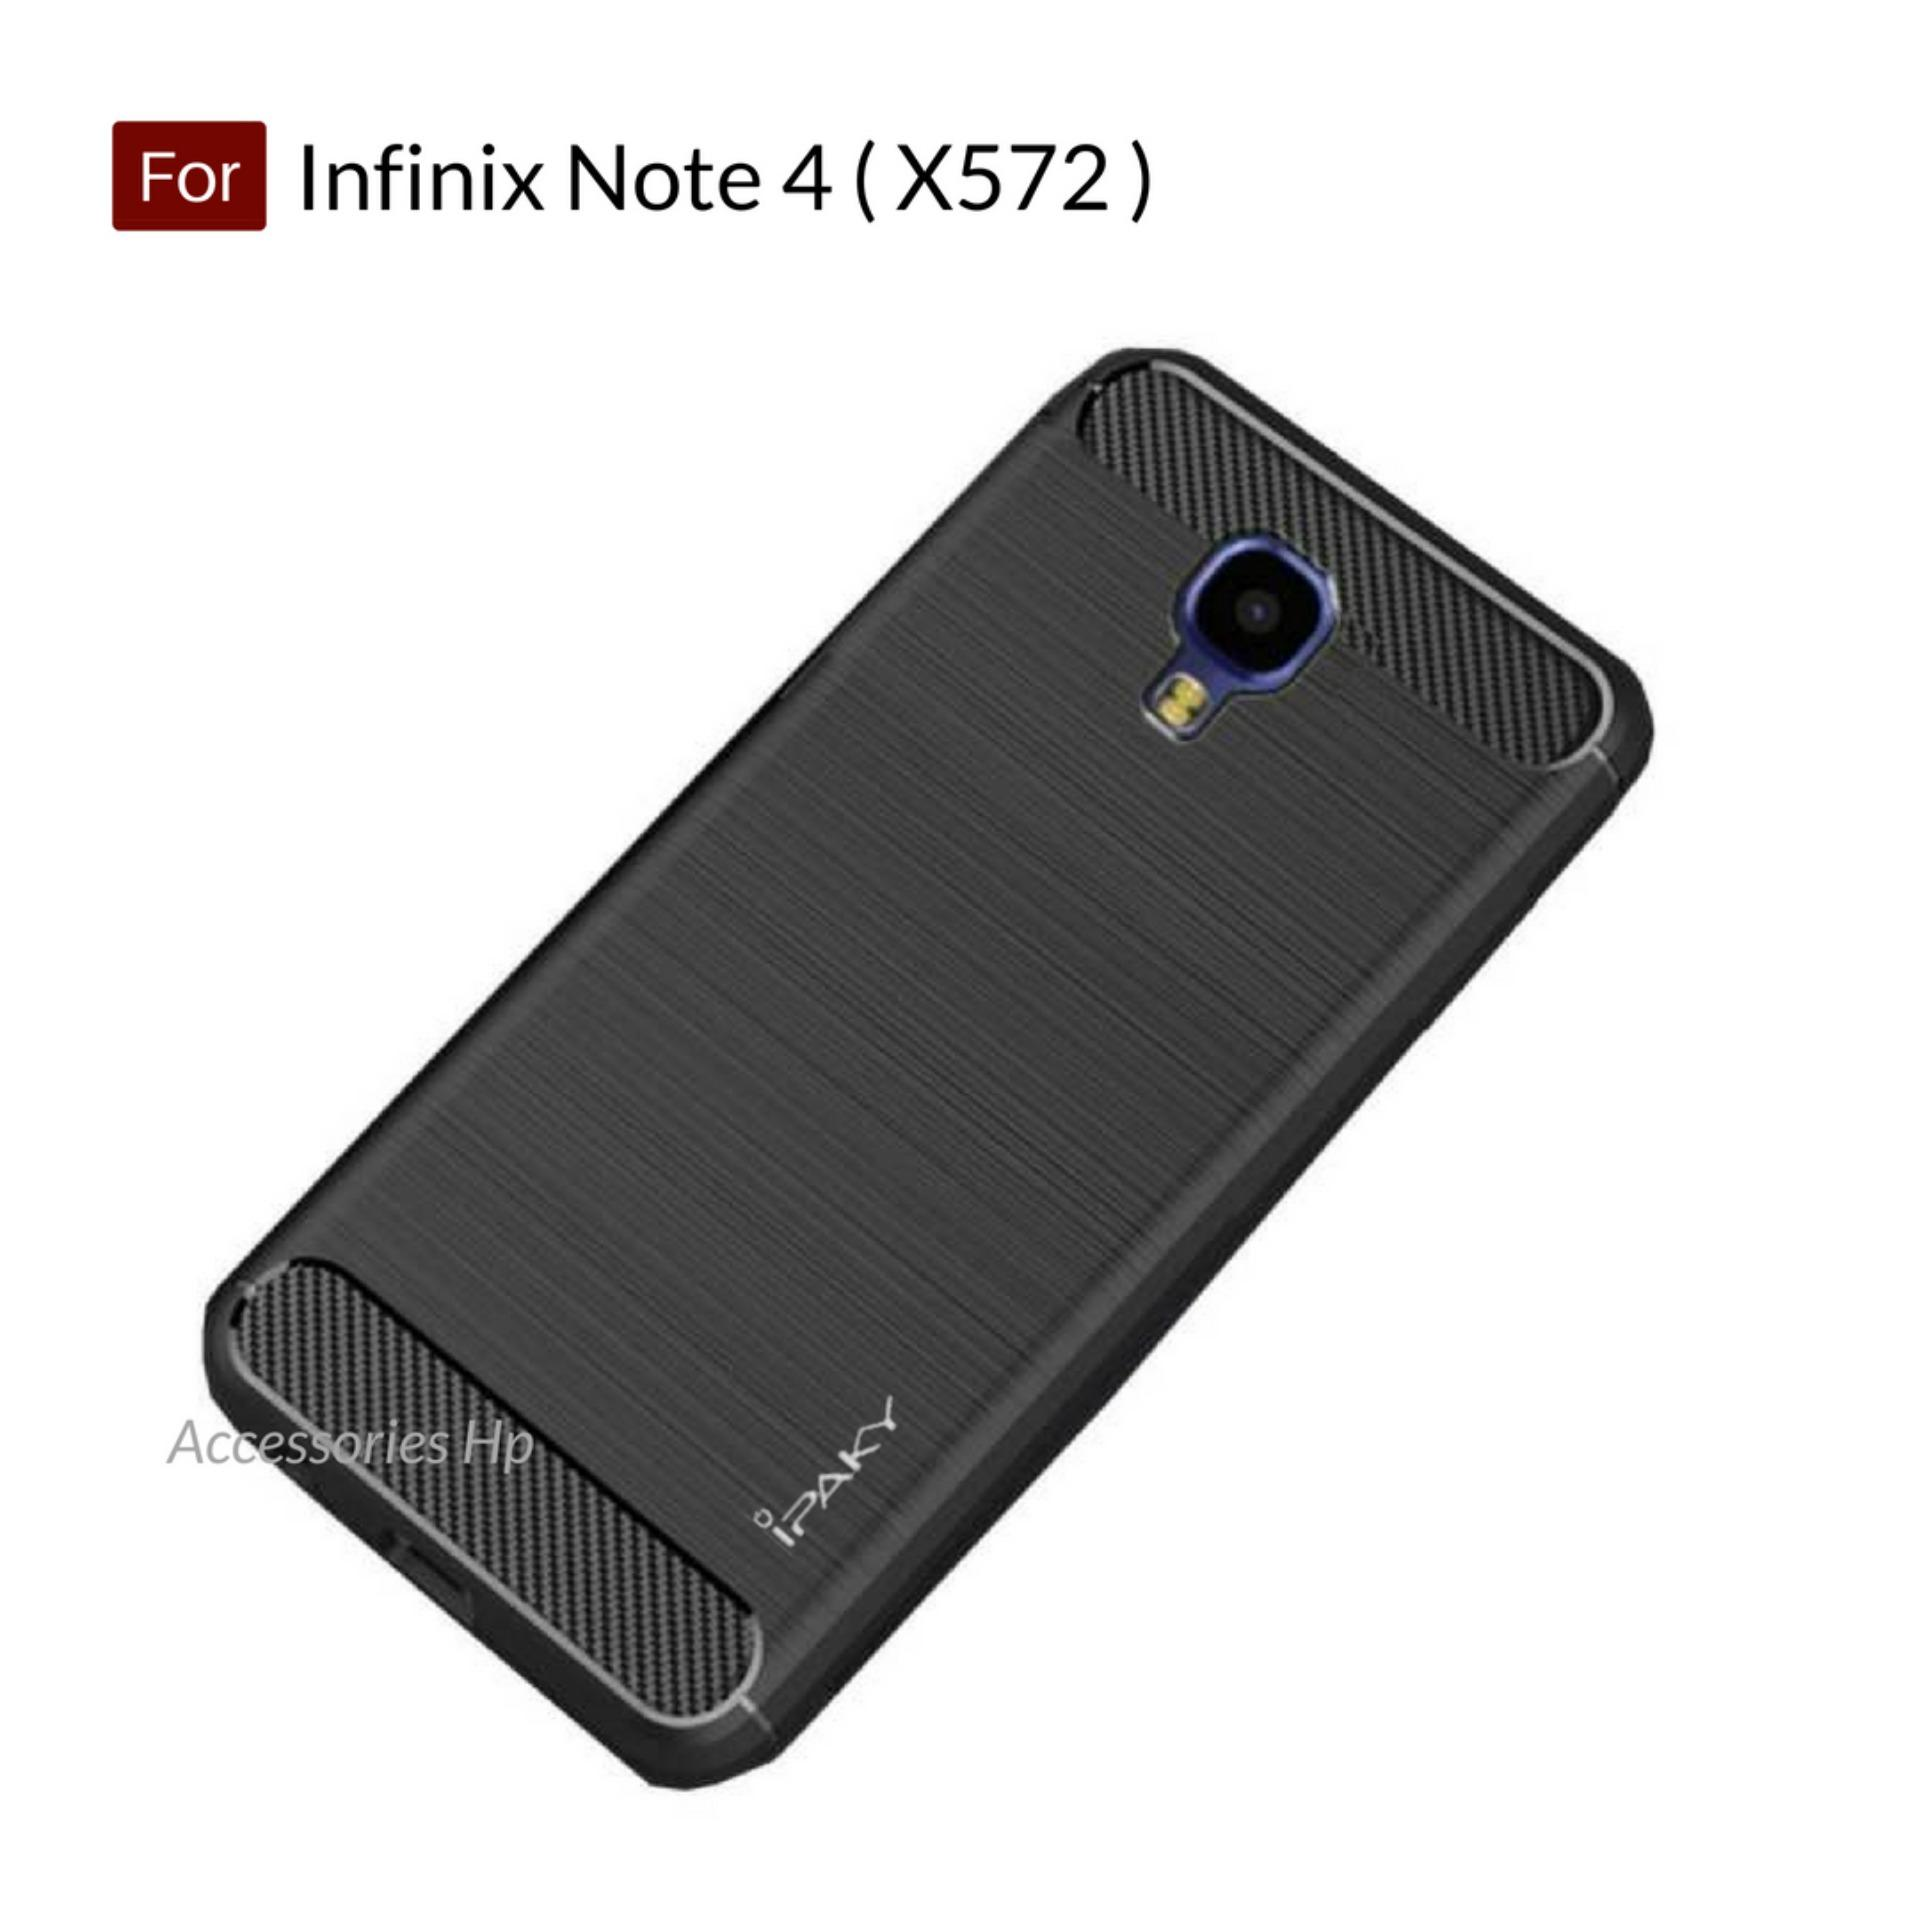 Accessories HP Premium Quality Carbon Shockproof Hybrid Case For Infinix Note 4 ( X572 ) - Black